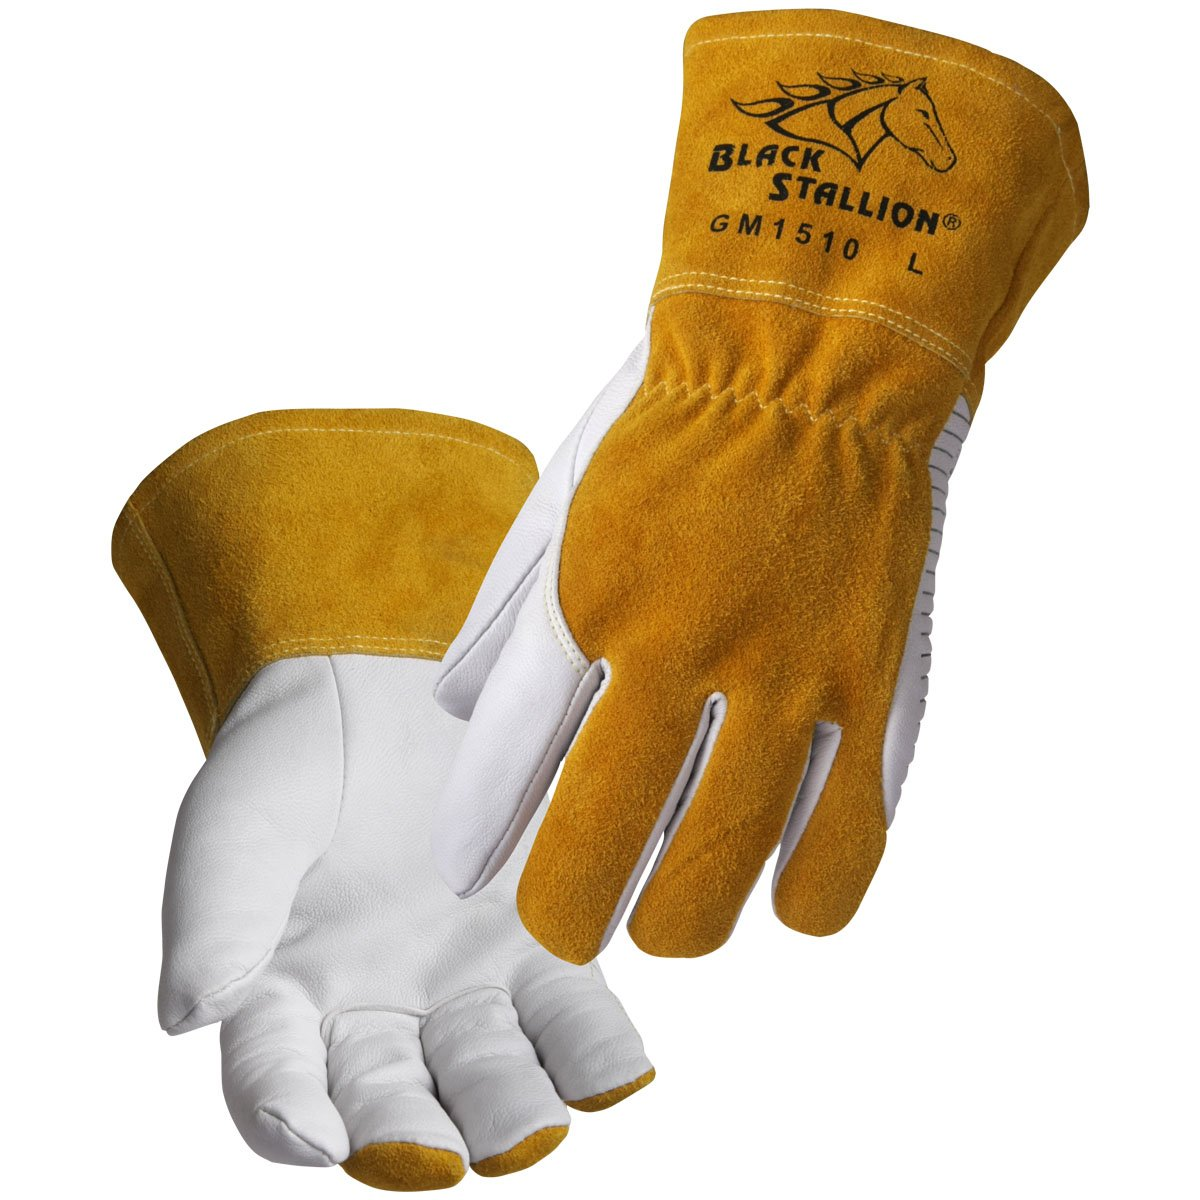 Revco BSX Black Stallion Comfortable & High-Dexterity MIG/TIG Welding Glove (Small)